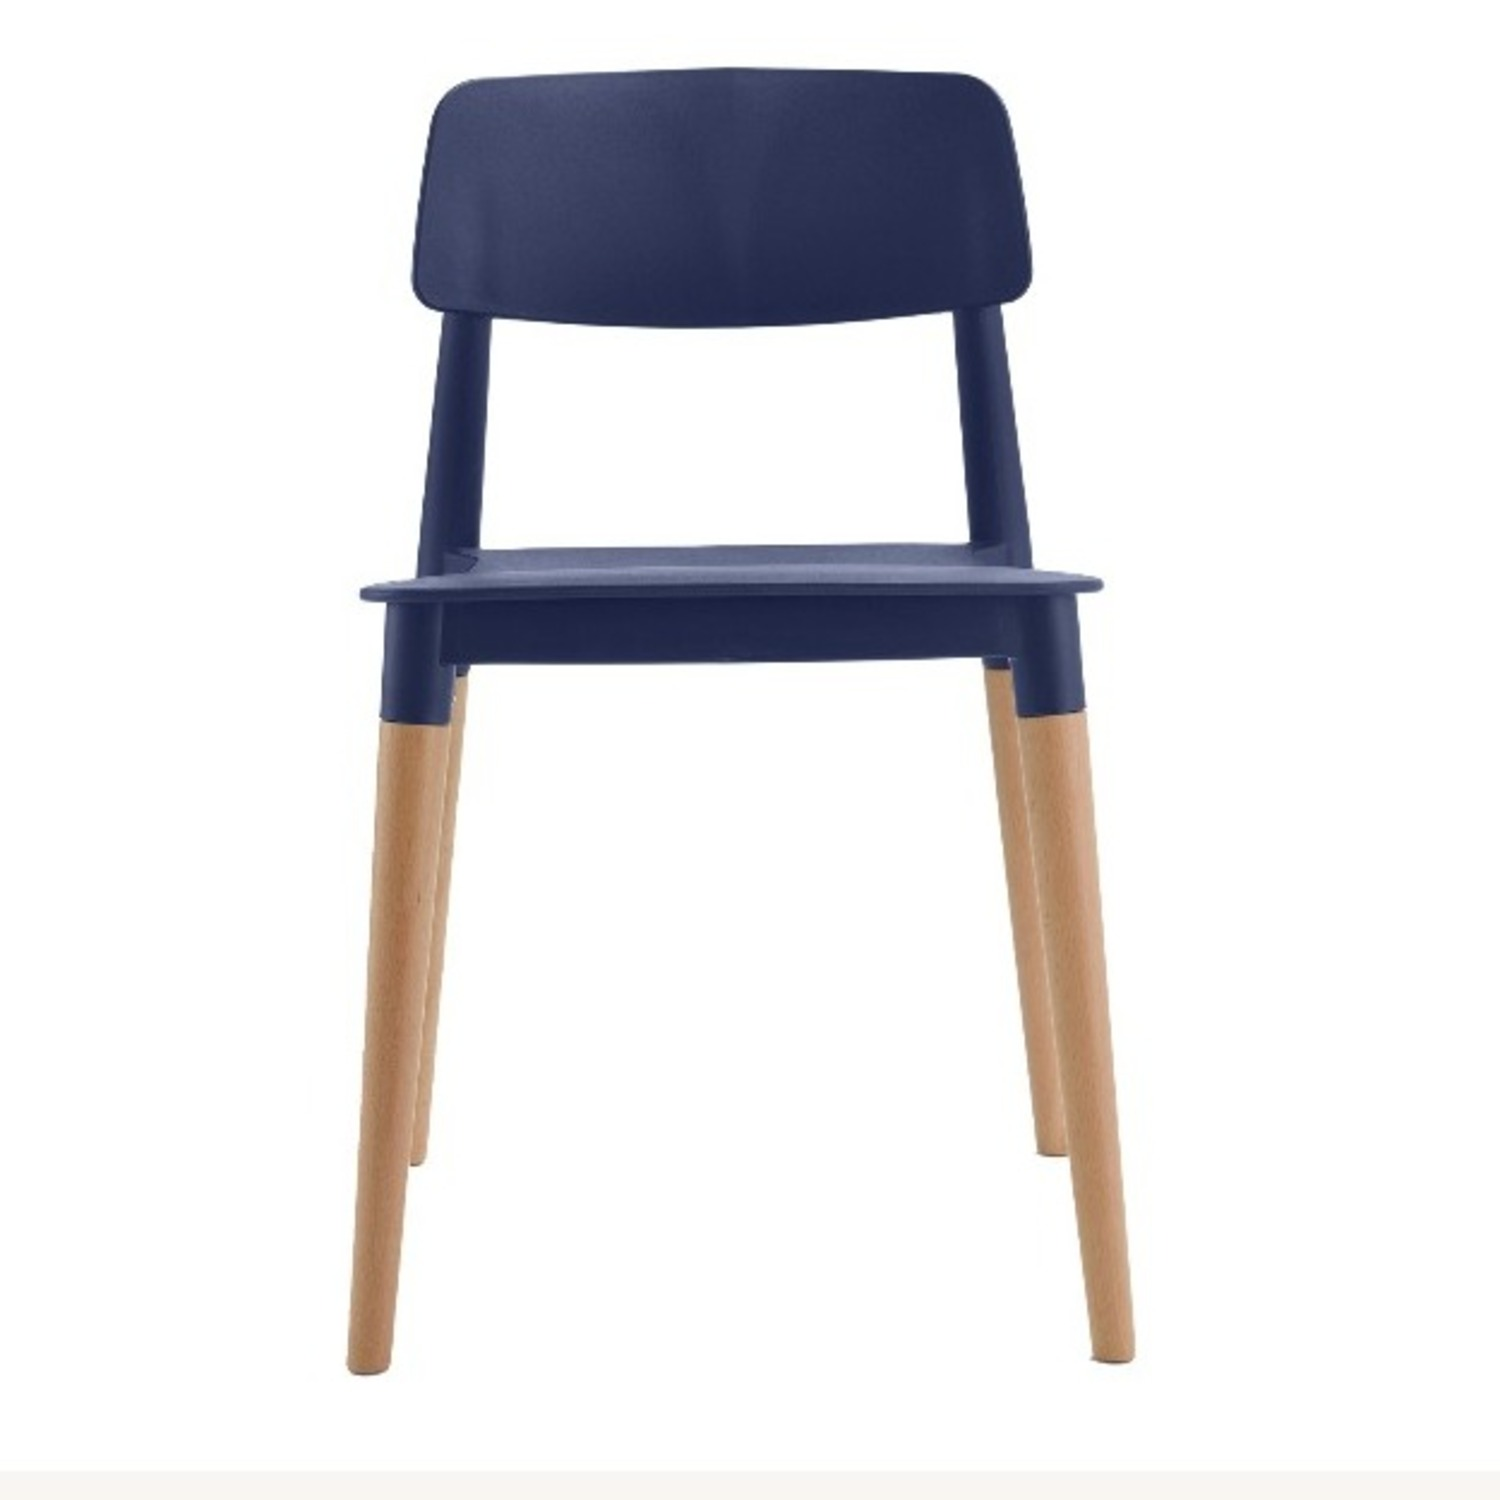 Navy Blue and Natural Wood Chairs - image-3